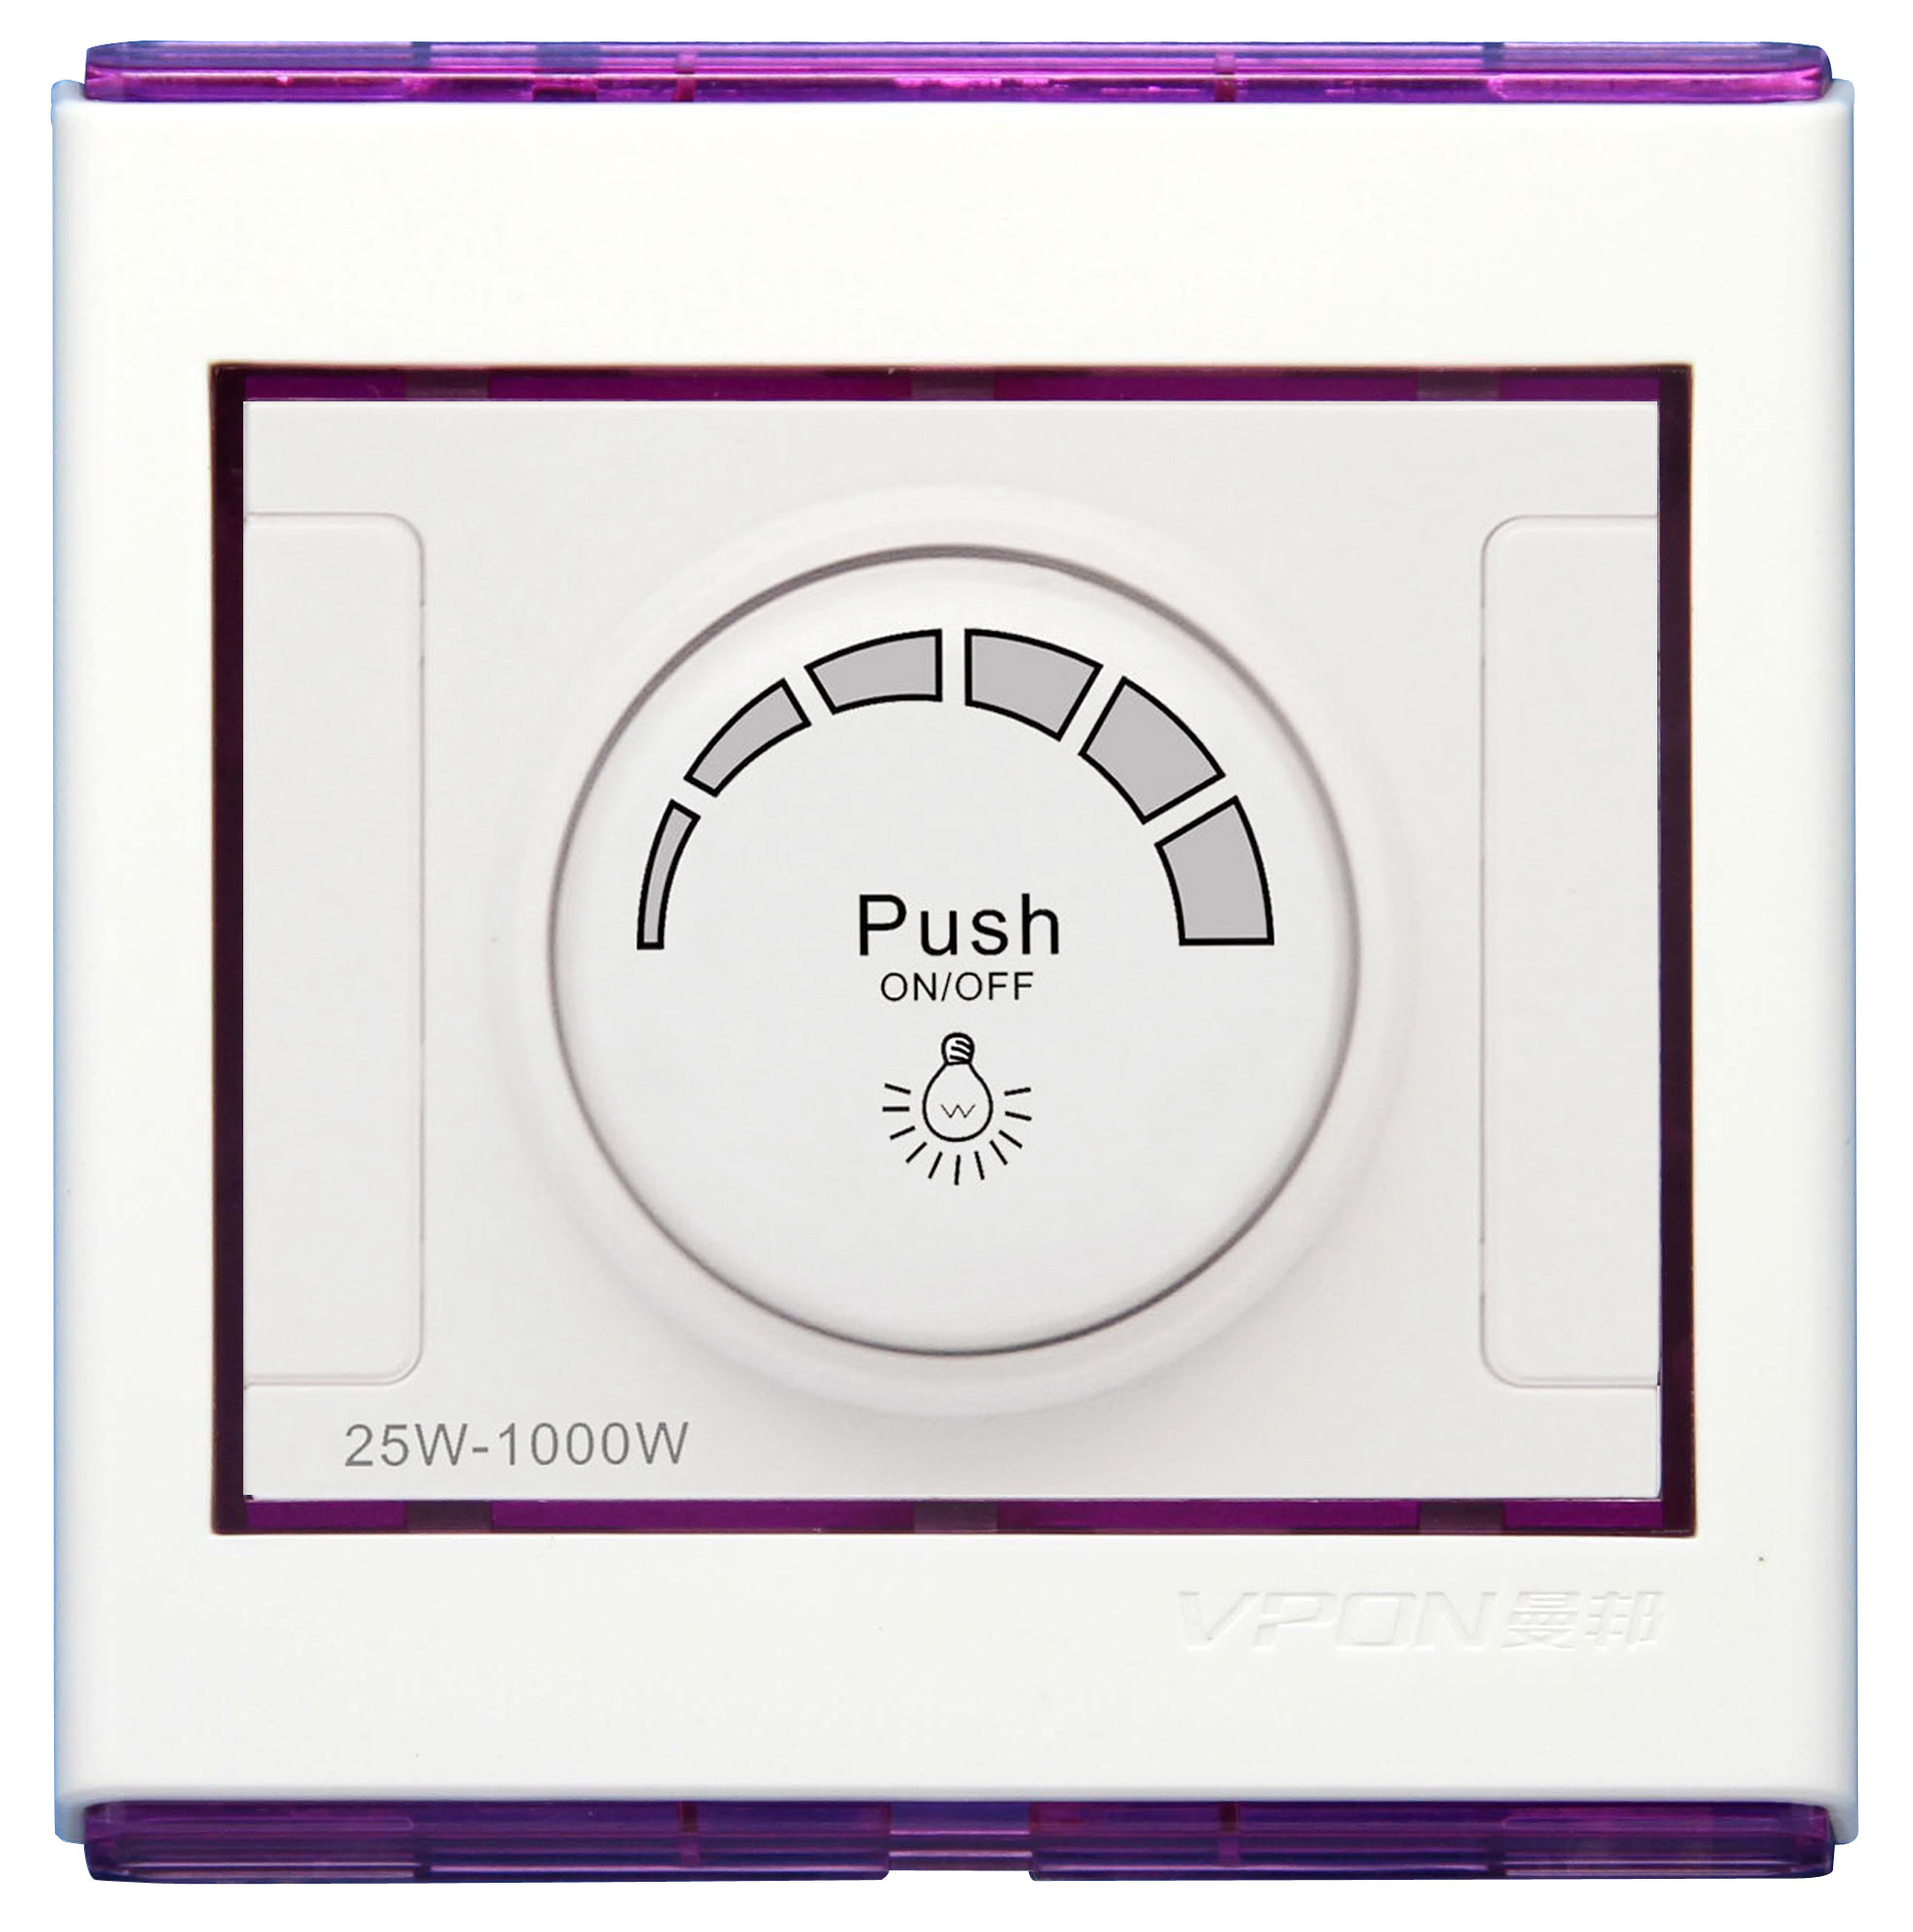 Light Dimmer (Push on/Off)